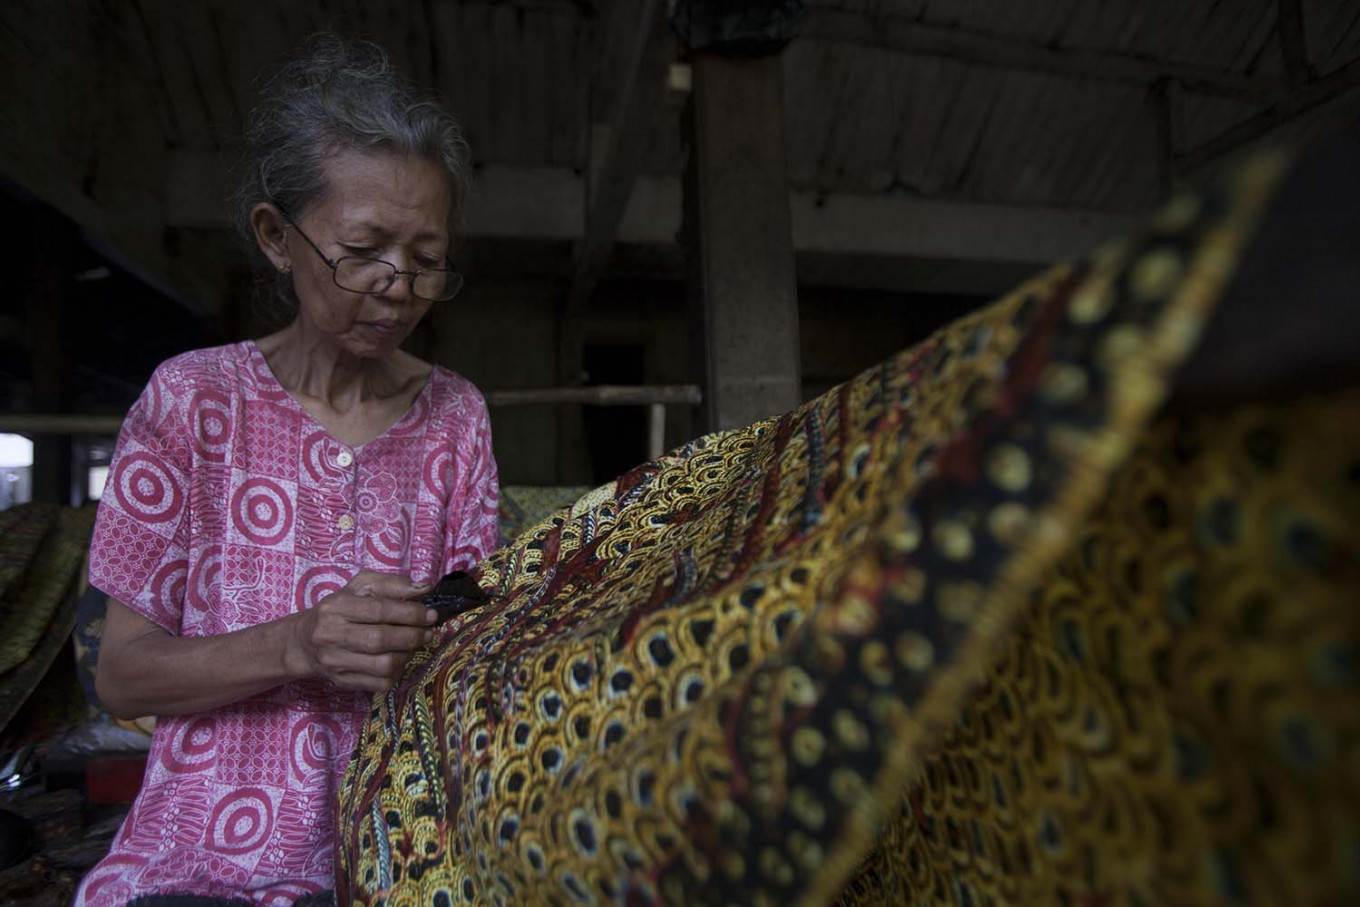 Mbah(grandma) Suti is a 69-year-old batik artist who has been creating batik since 1969.  JP/Sigit Pamungkas